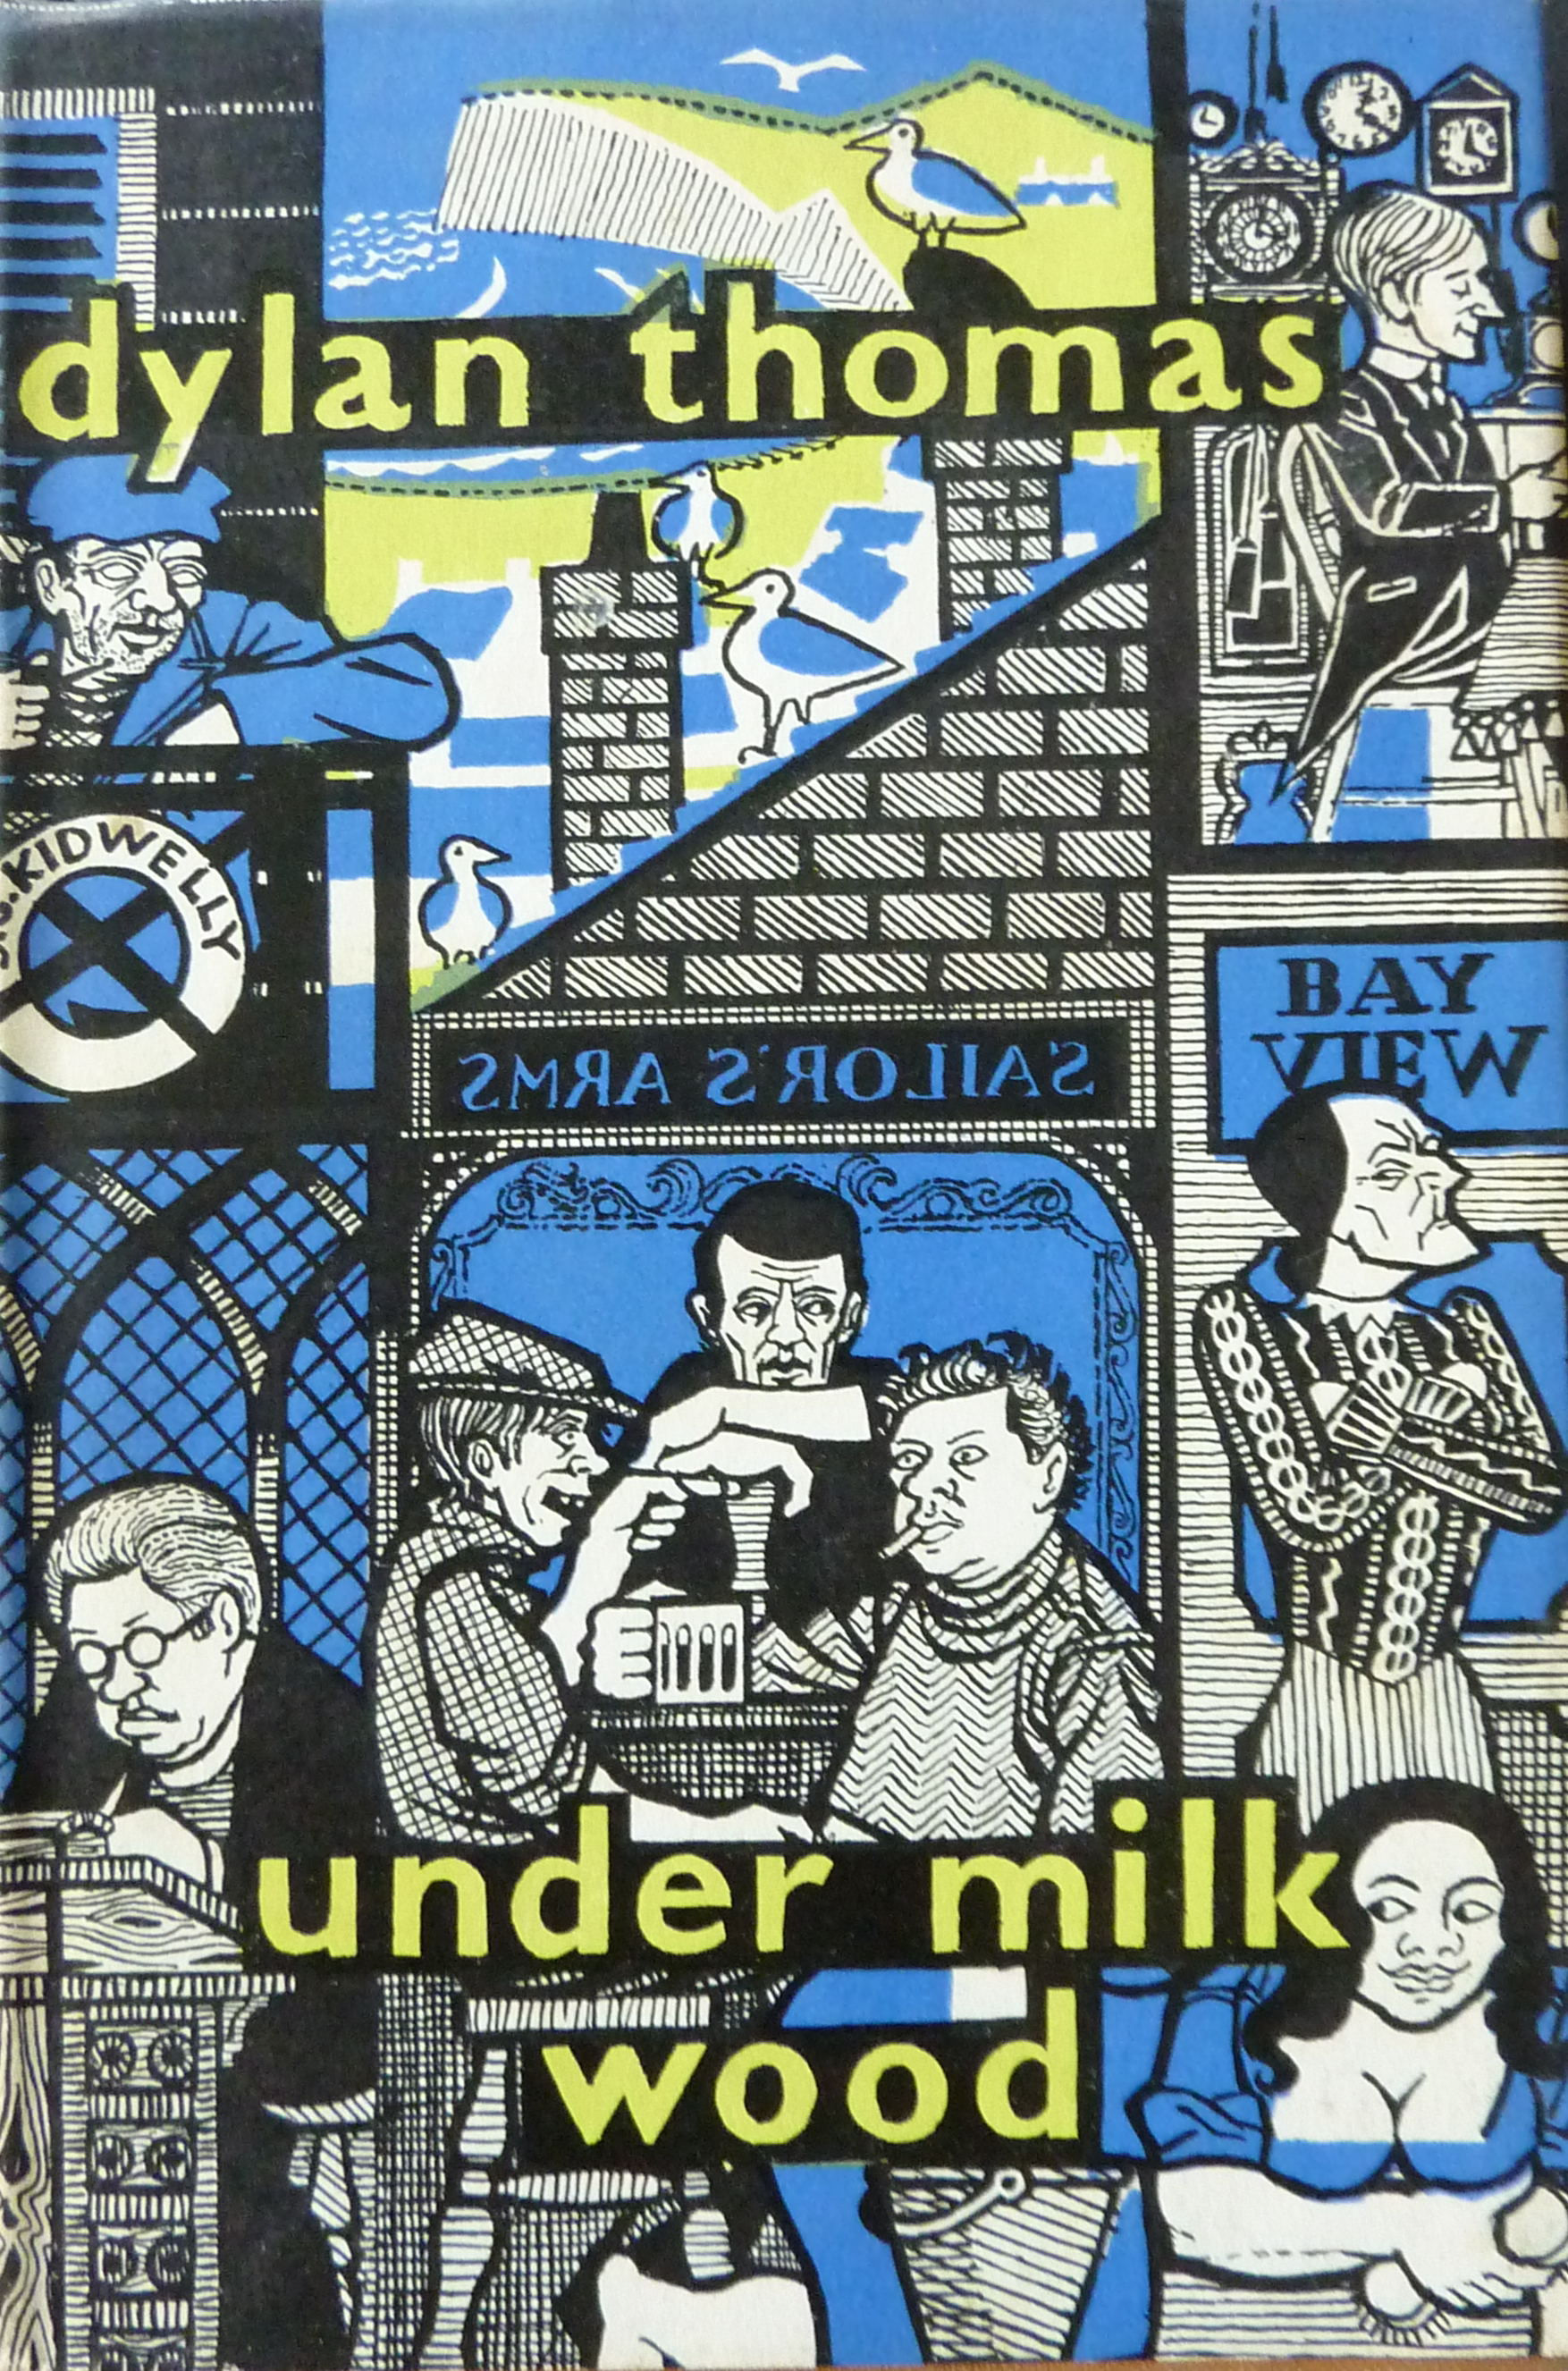 under milk wood essay example In under milk wood and ulysses, respectively, each author captures the life of a whole society as it is reflected in a single day for joyce it is the urban life in dublin, while for thomas it is the welsh village community of llareggub.